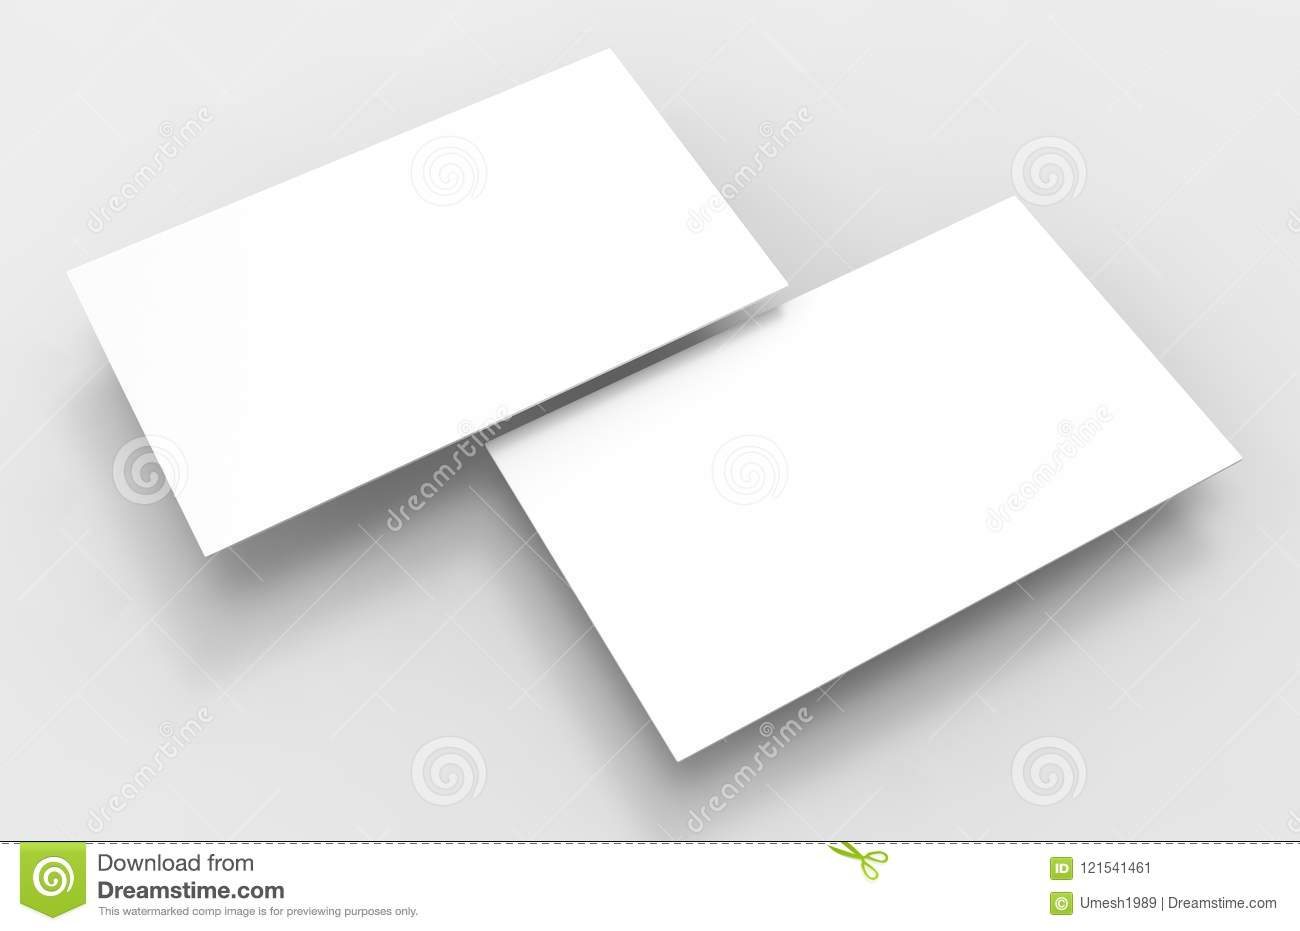 Blank white 3d visiting card template 3d render illustration for blank white 3d visiting card template 3d render illustration for mock up and design presentation cheaphphosting Images